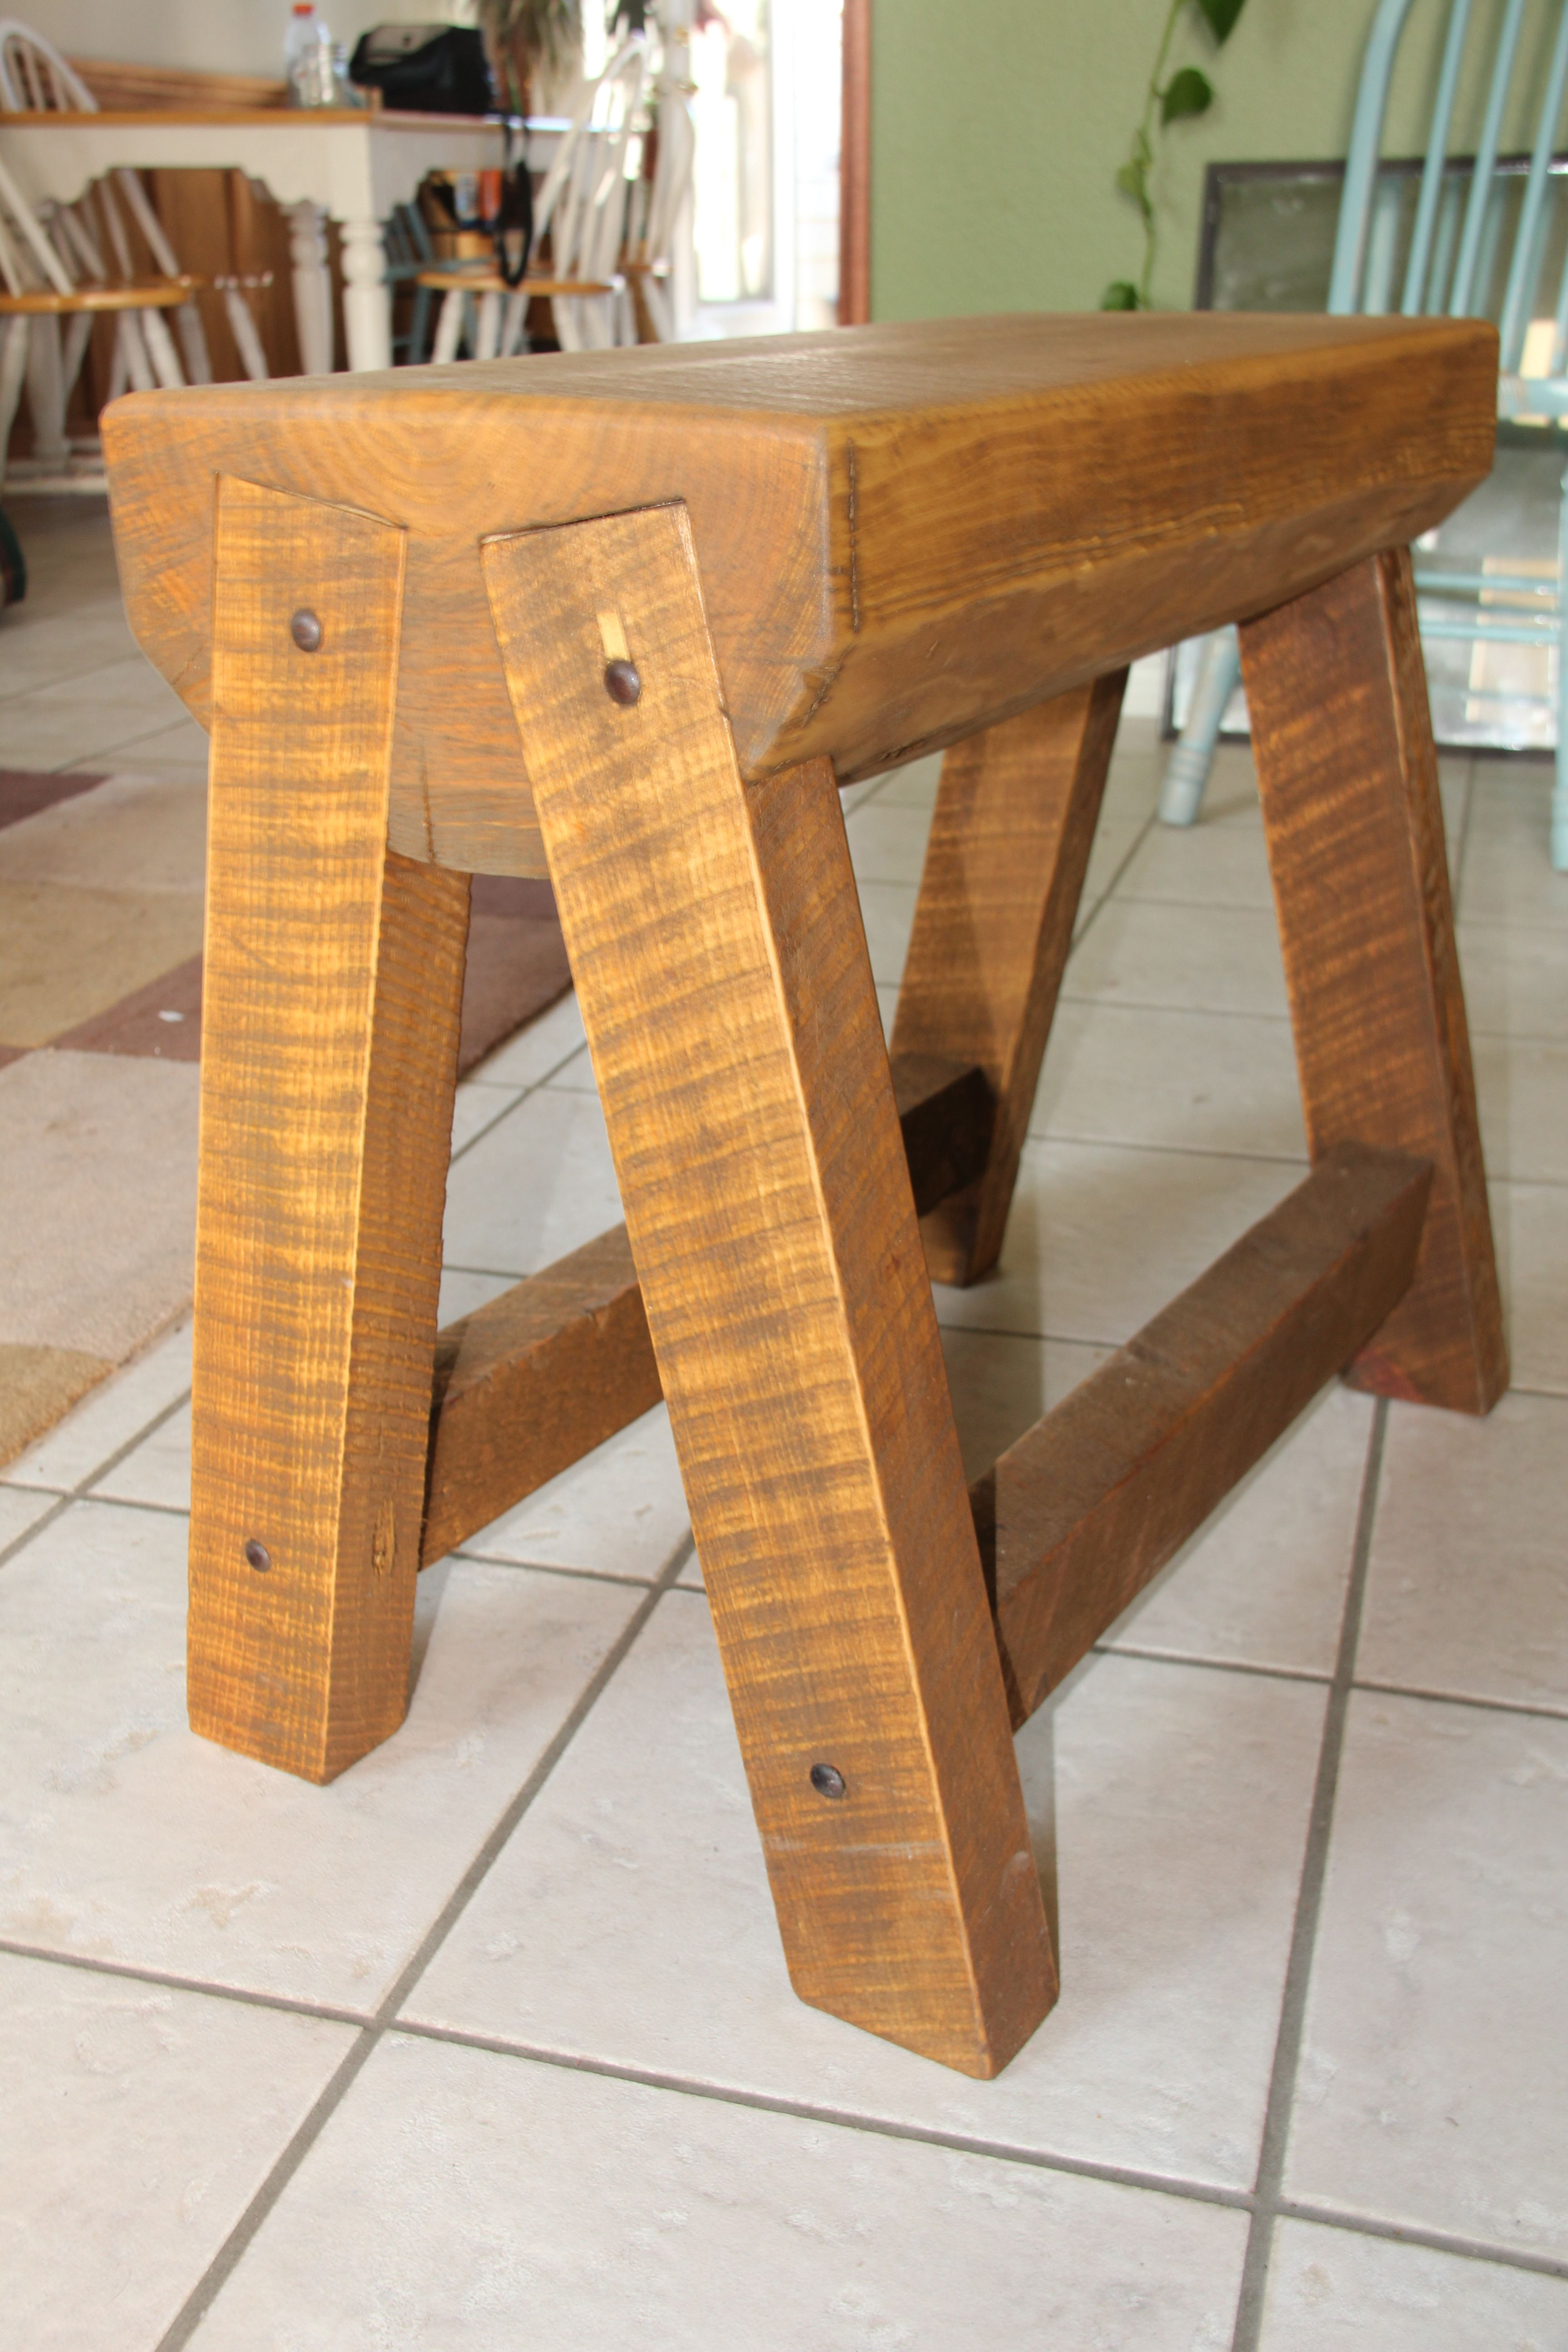 Montana-made bench/end-table. Brett Burglund - designer and creator. Made from scraps from construction project.